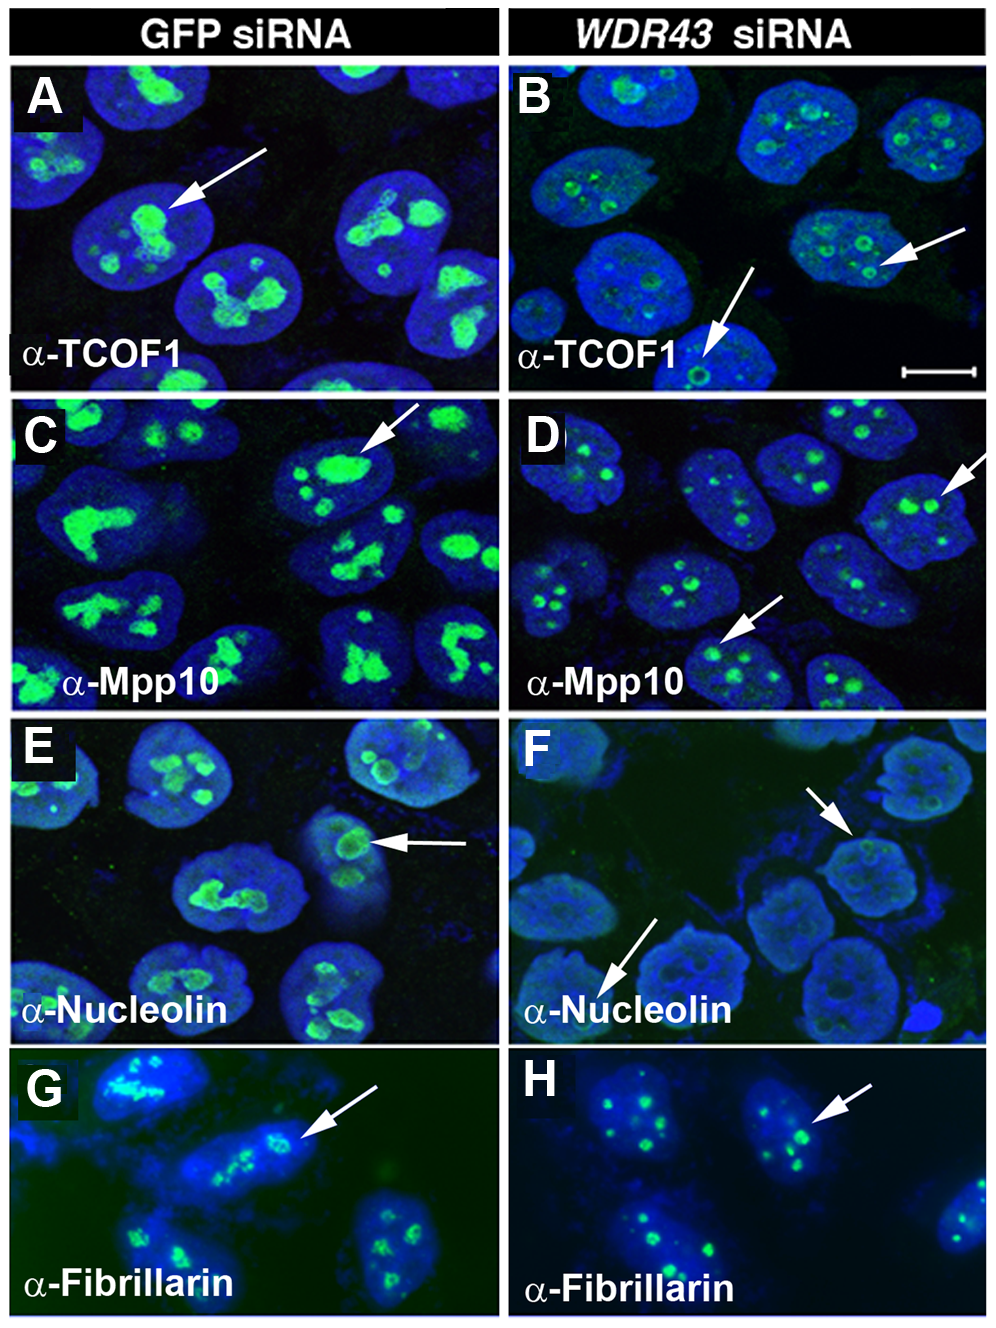 Subcellular localization of nucleolar proteins in WDR43 depleted HeLa cells.